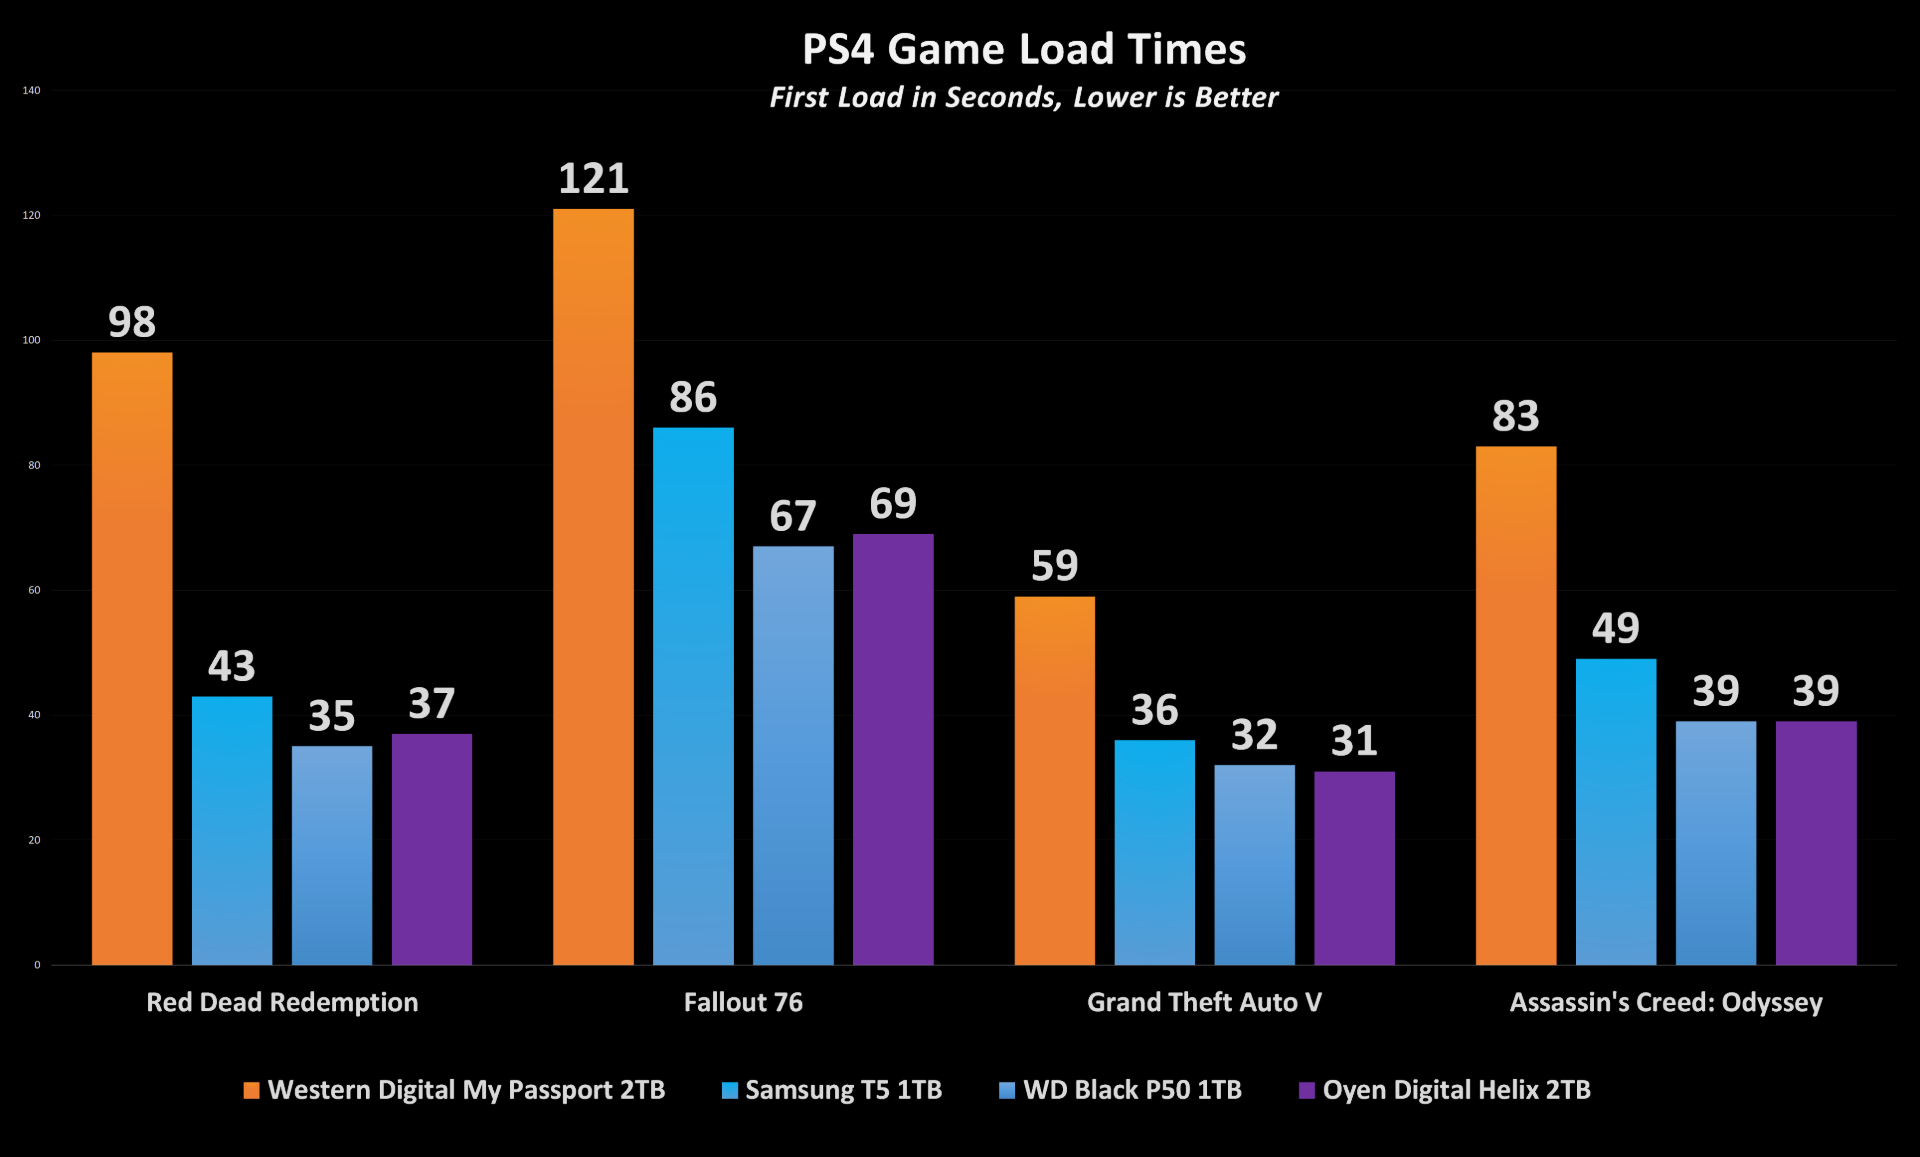 WD Black P50 PS4 Pro Load Times